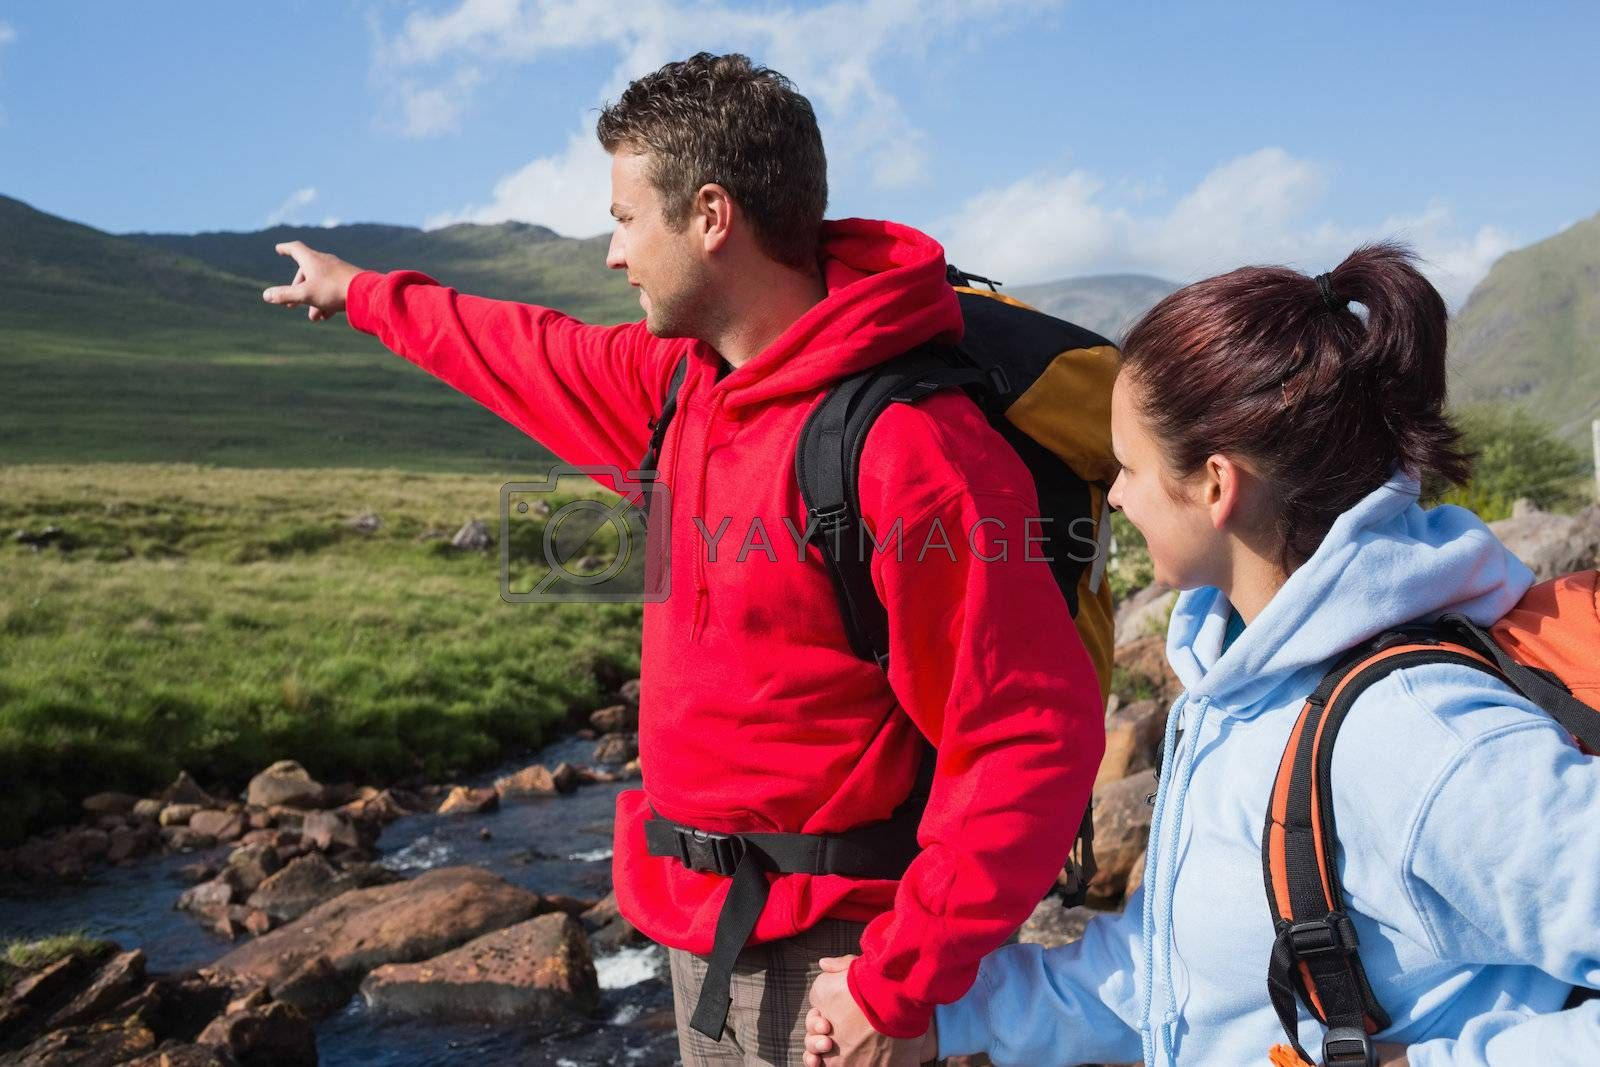 Couple standing at edge of river on hike with man pointing by Wavebreakmedia